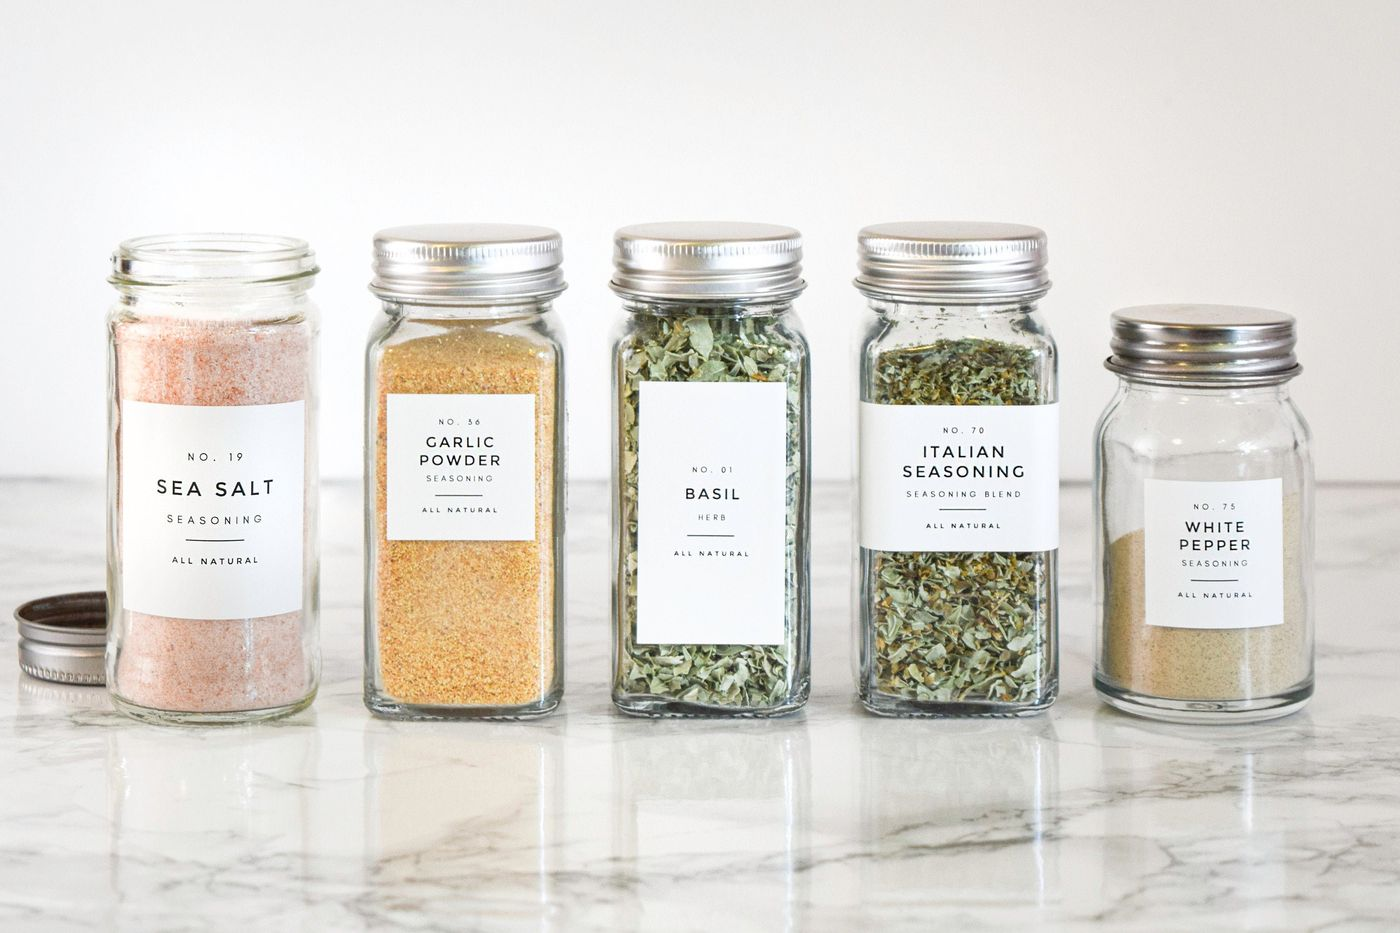 A set of five labeled spice containers in a row